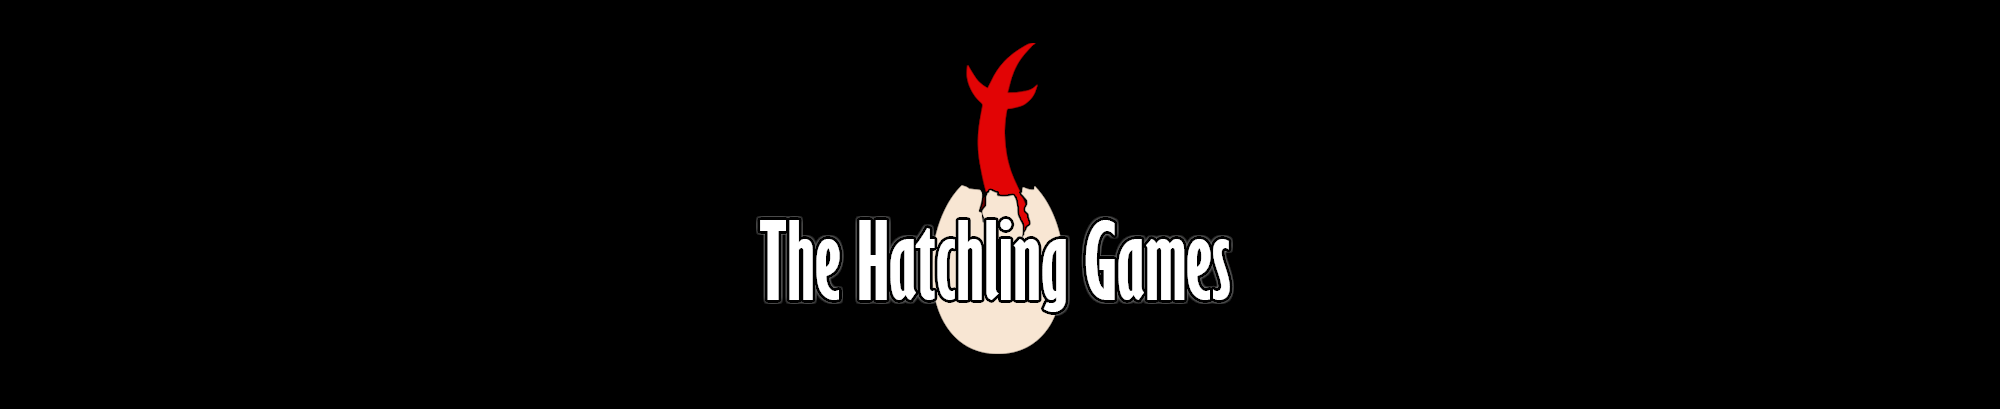 The Hatchling Games logo